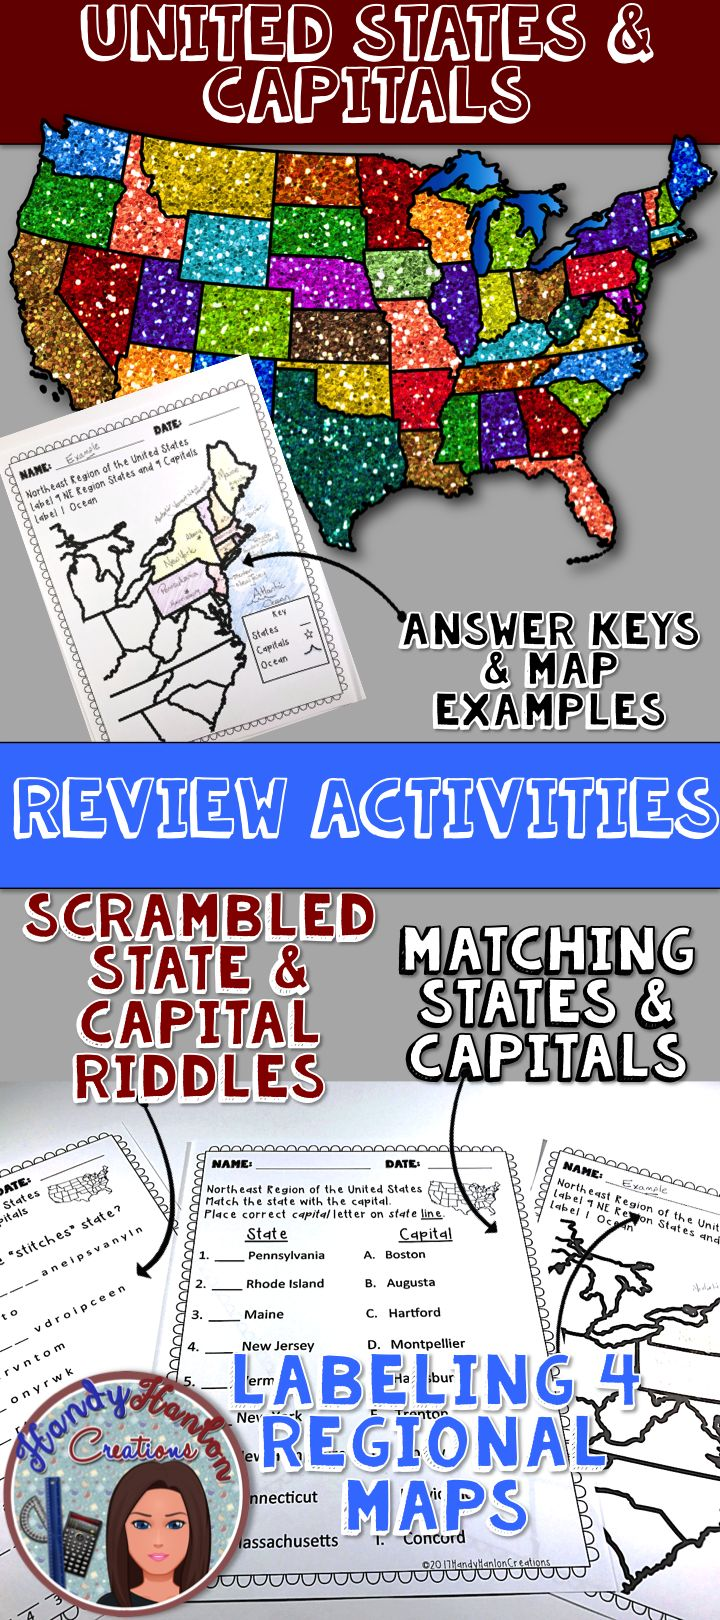 Best Ideas About States And Capitals On Pinterest Capital - Us states and capitals list map